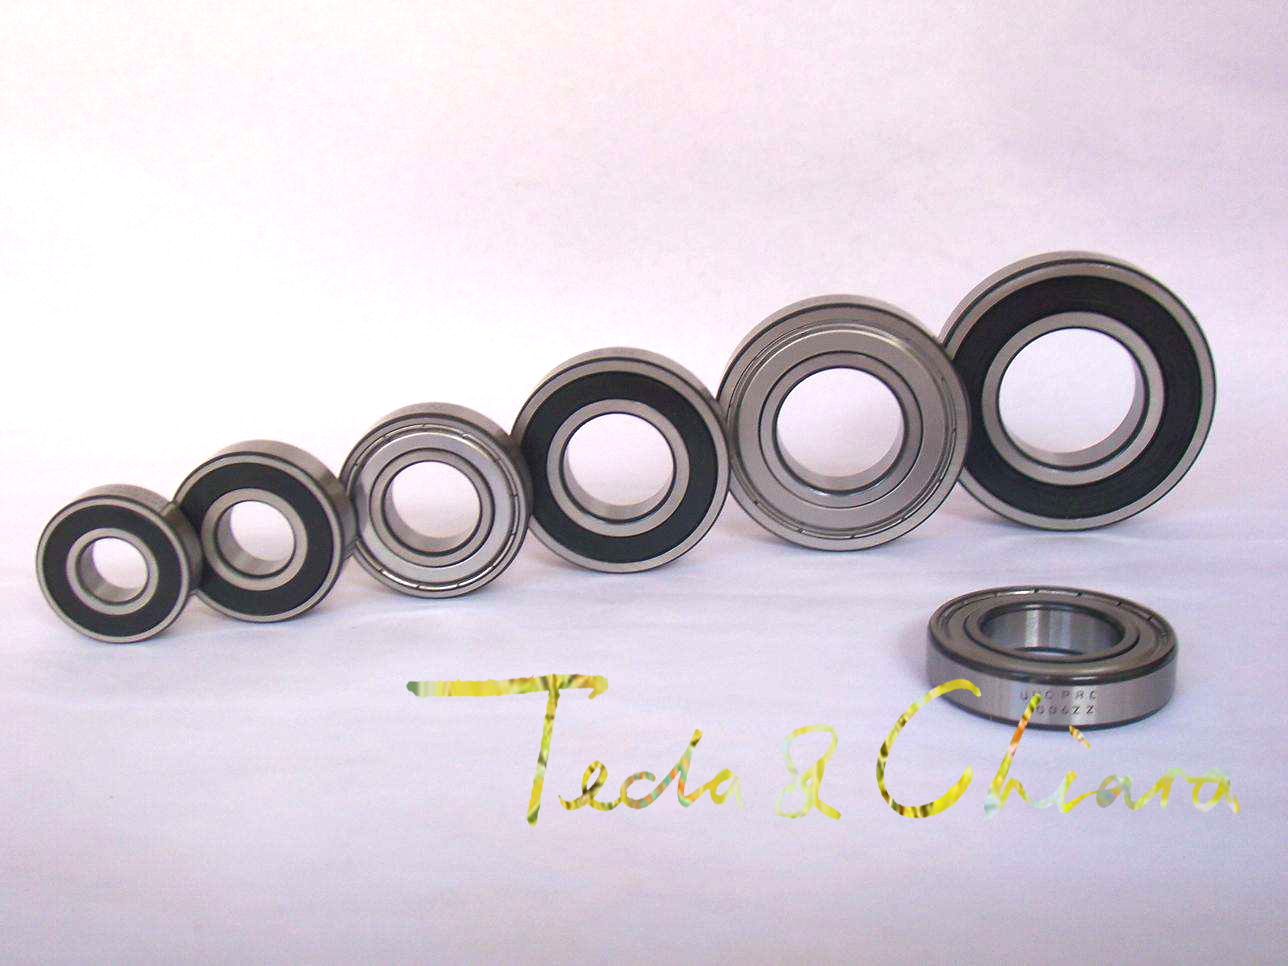 6001 6001ZZ 6001RS 6001-2Z 6001Z 6001-2RS ZZ RS RZ 2RZ Deep Groove Ball Bearings 12 x 28 x 8mm High Quality аксессуар bosch tcz 6001